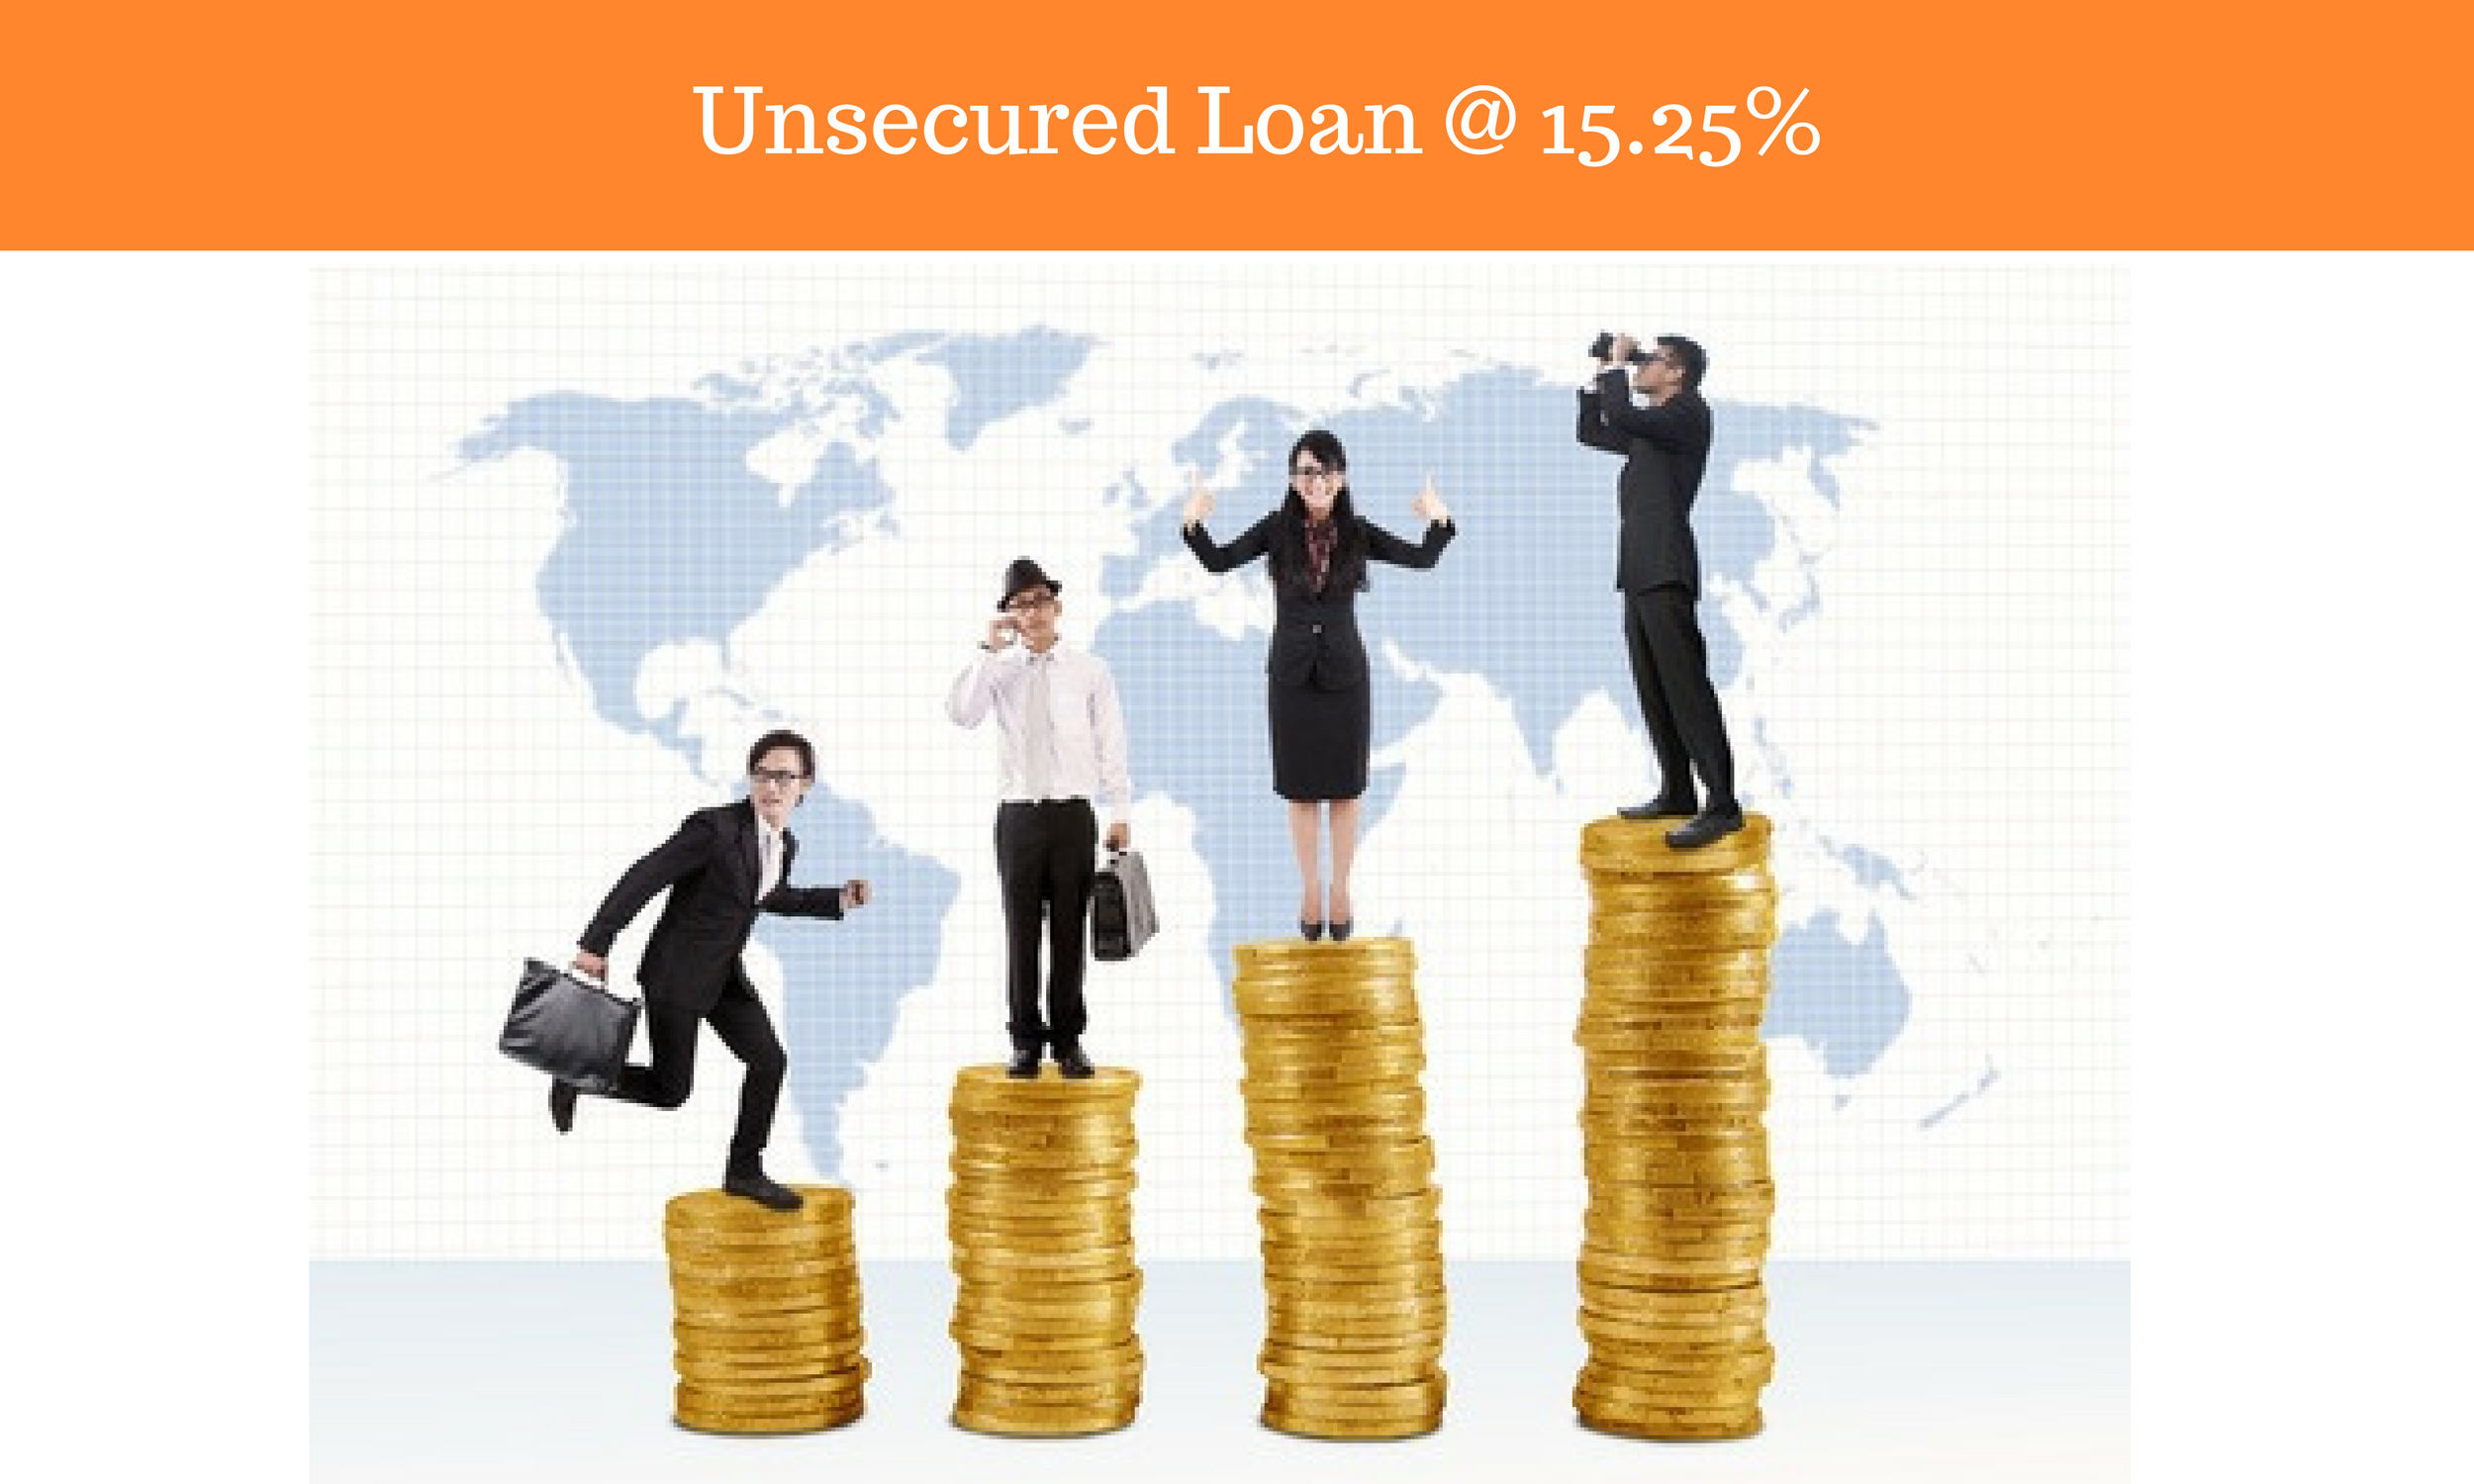 Loan For Self Employed Non-Professionals  at 15.25%